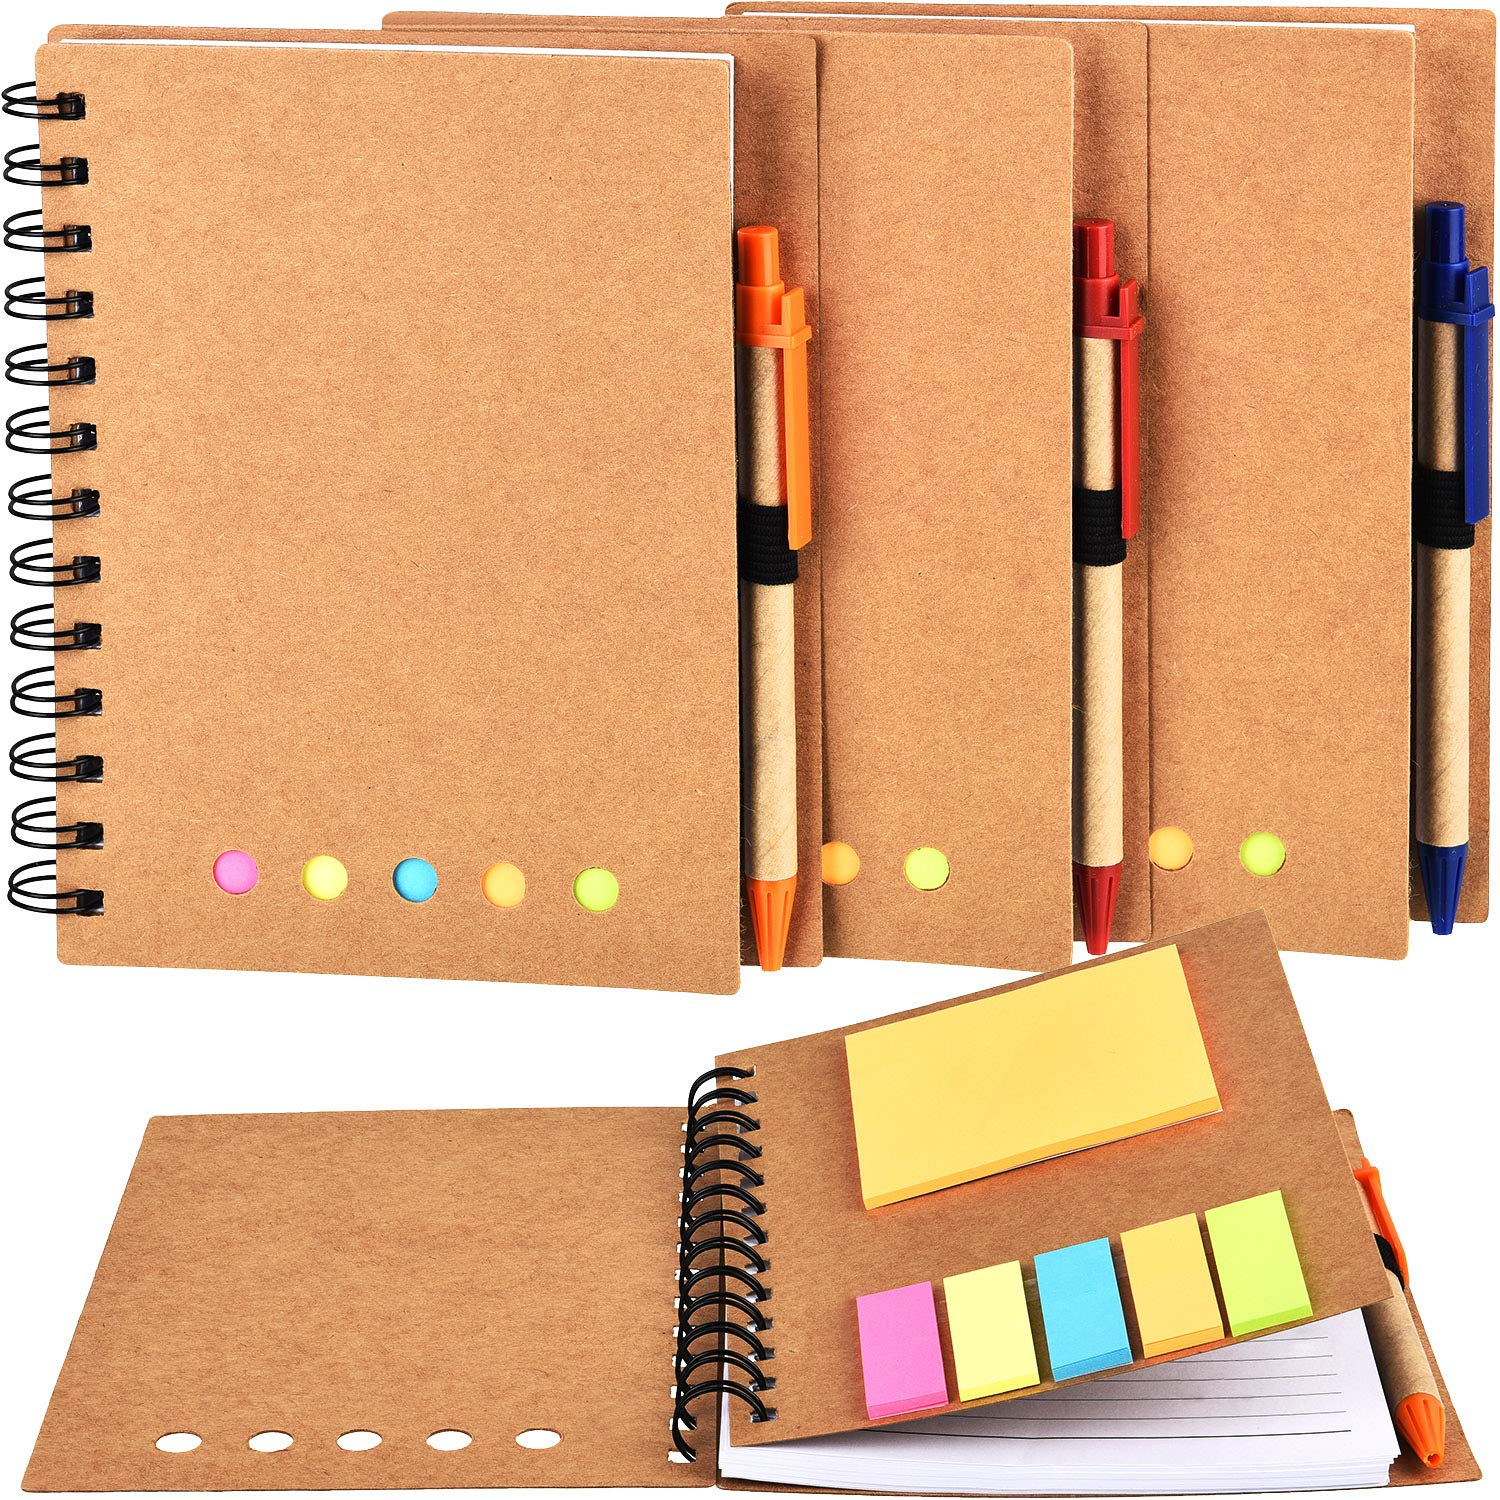 TOODOO 4 Packs Spiral Notebook Lined Notepad with Pen in Holder and Sticky Notes, Page Marker Colored Index Tabs Flags (Brown Cover, Large) by TOODOO